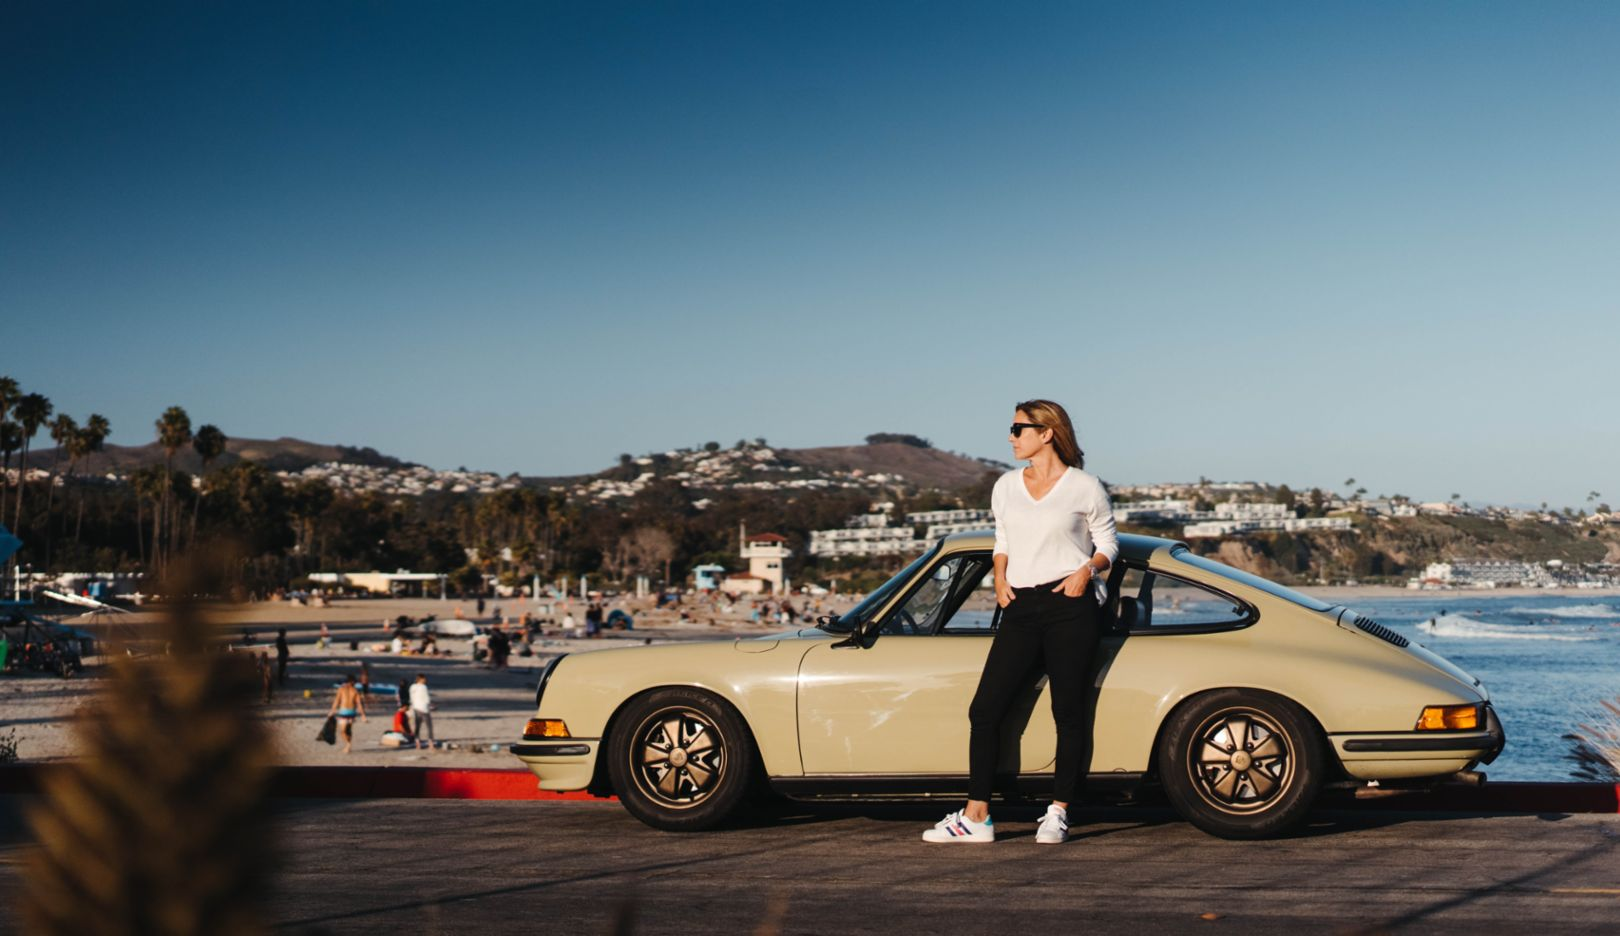 California Dreamin': live in the moment and enjoy life. Things are going well in Newport Beach—here, with Lara's 911 T model.